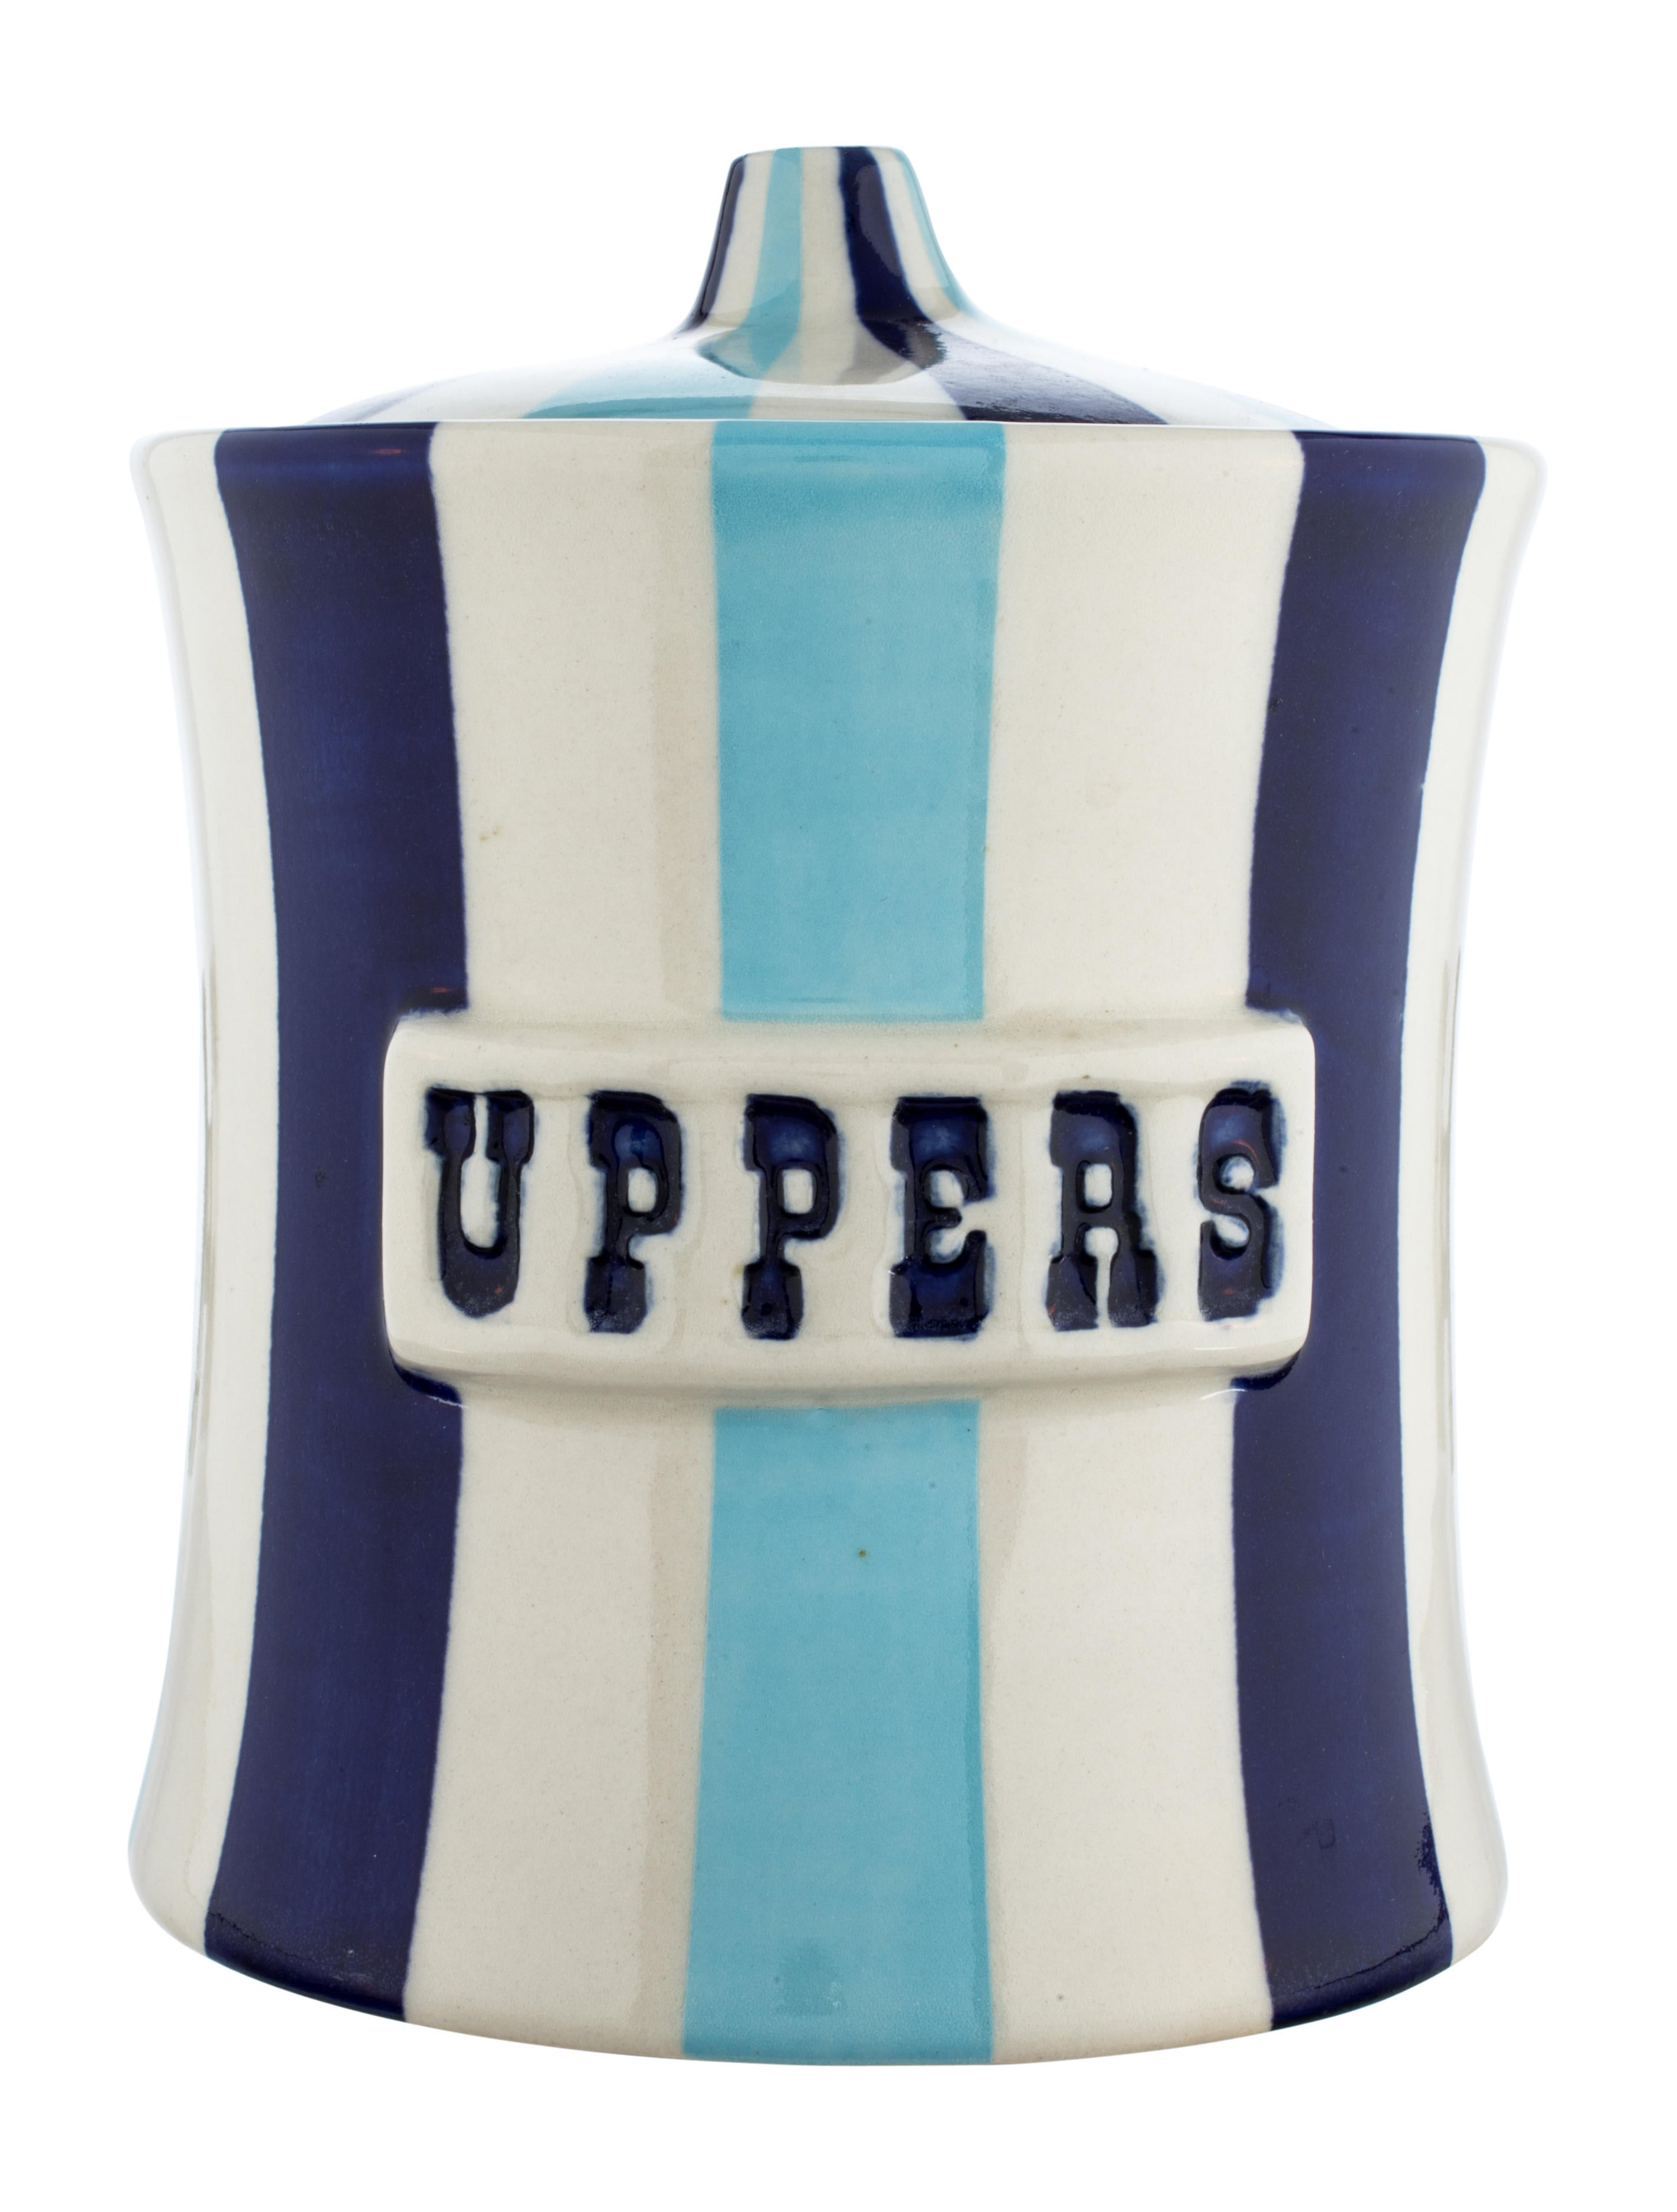 Accessories Jonathan Adler Uppers Apothecary Jar Uppers Apothecary Jar